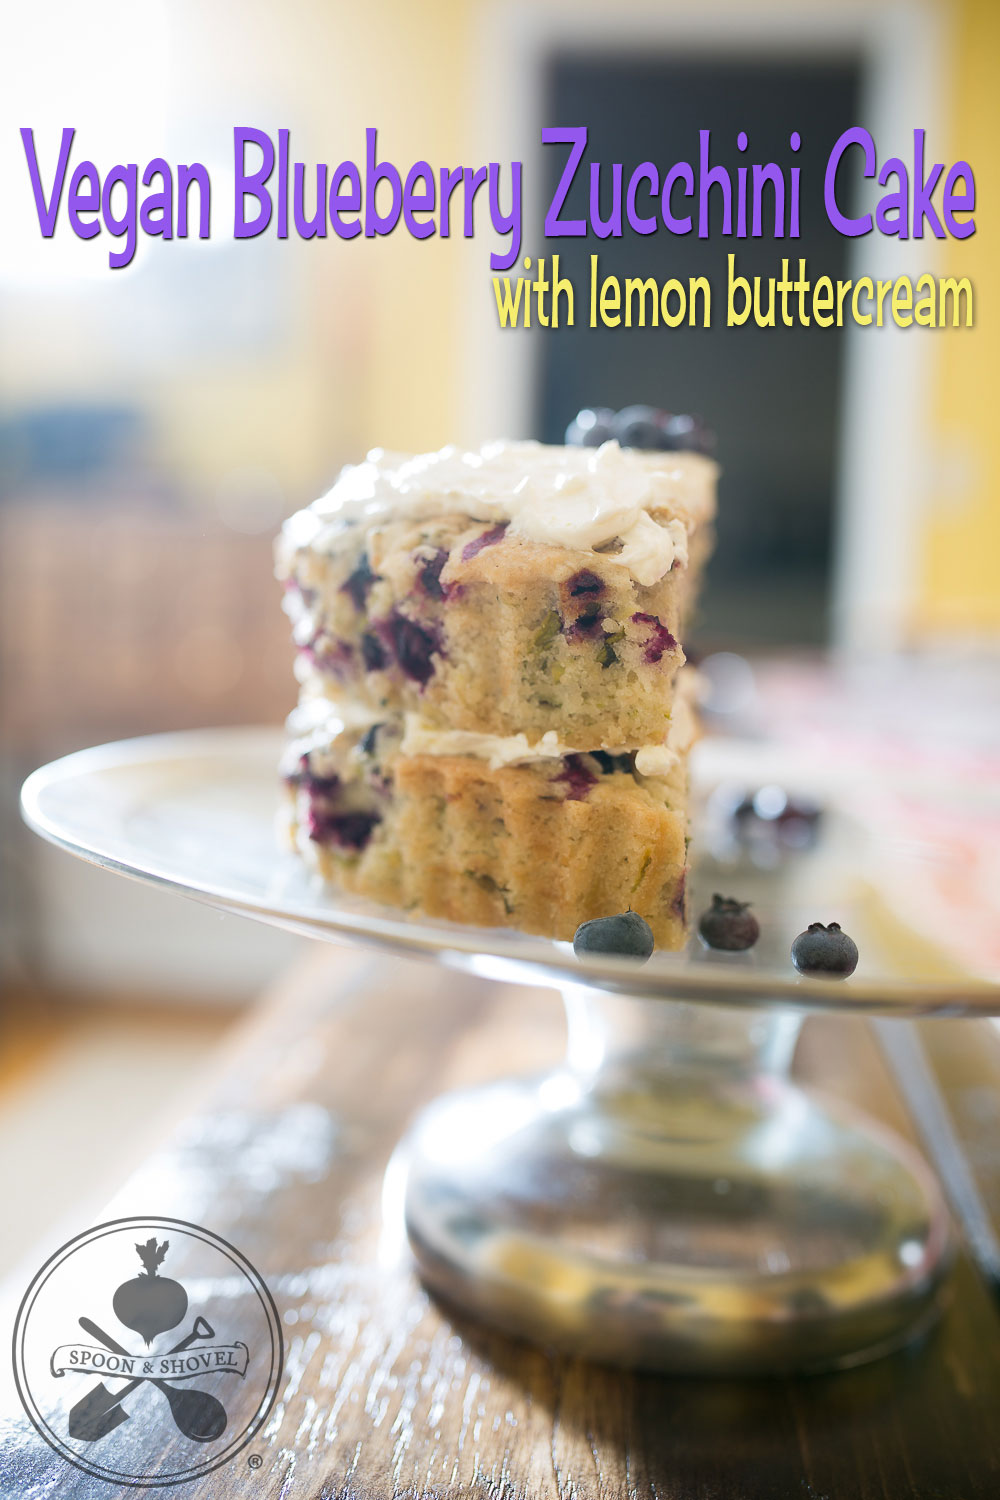 Vegan blueberry zucchini layer cake with lemon buttercream from The Spoon + Shovel